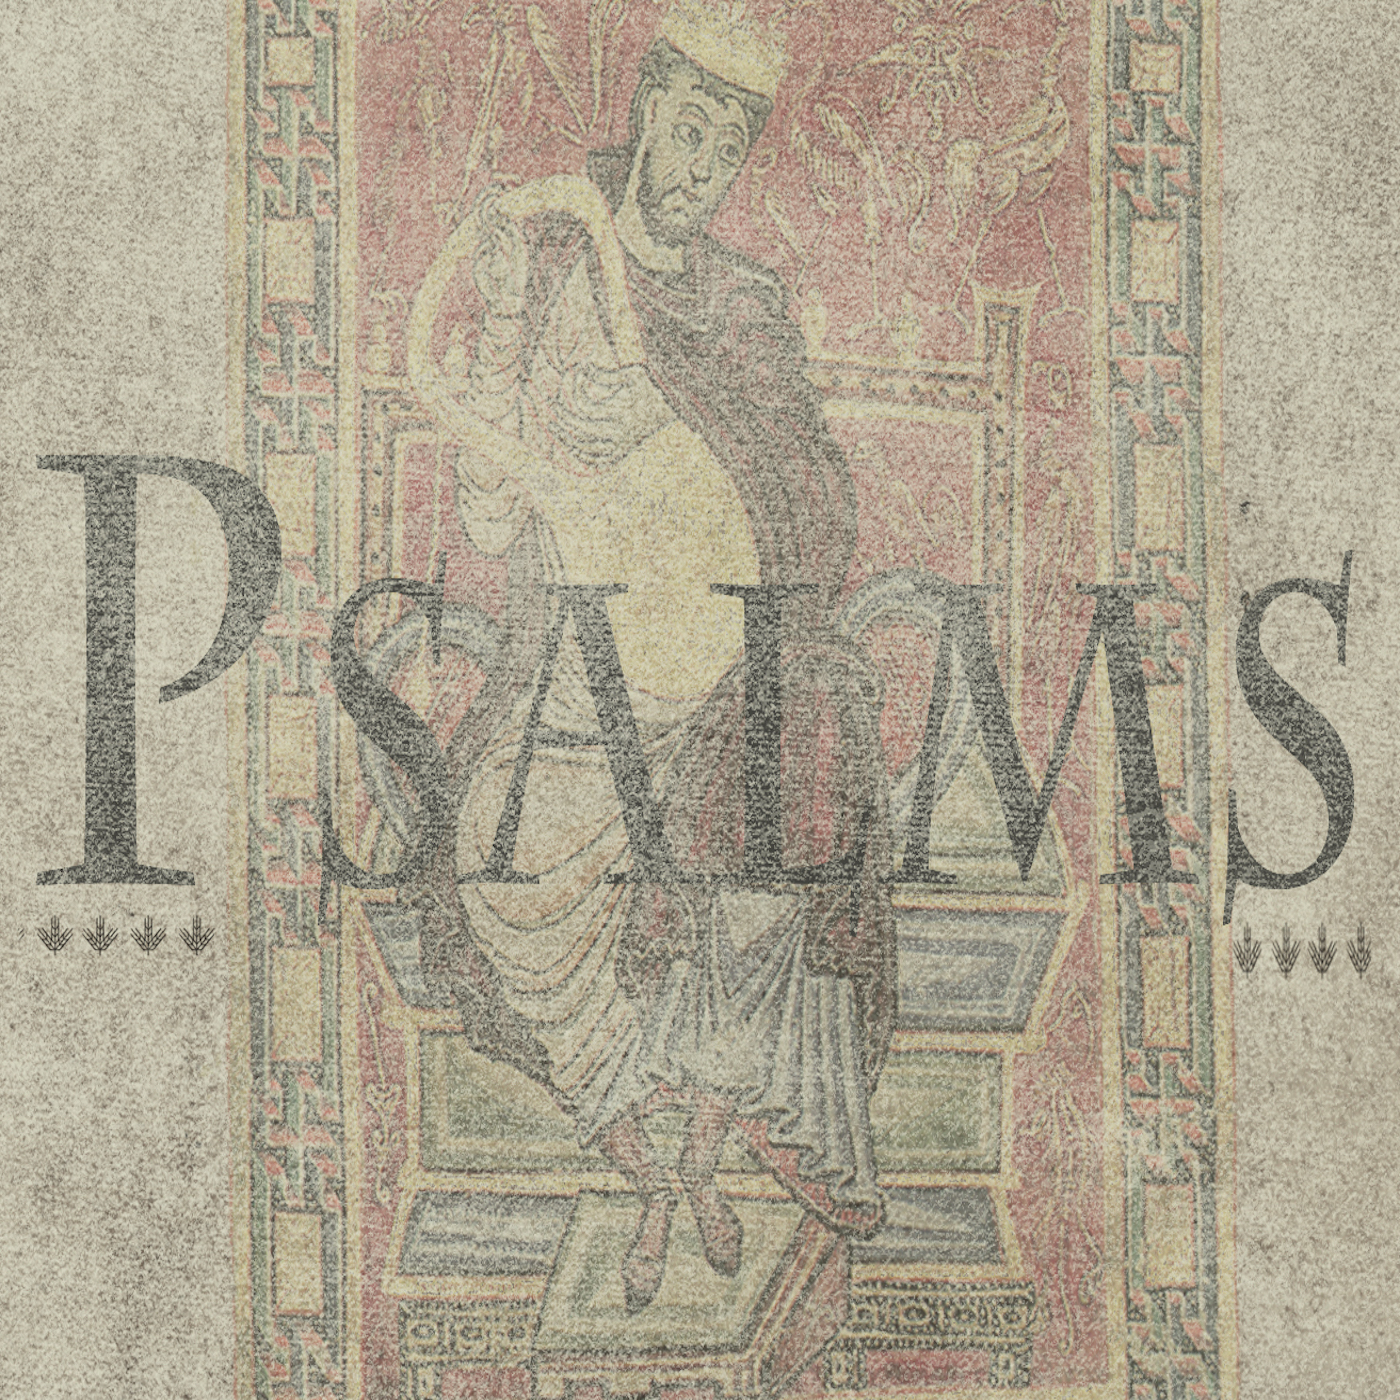 2018 Messianic psalms post